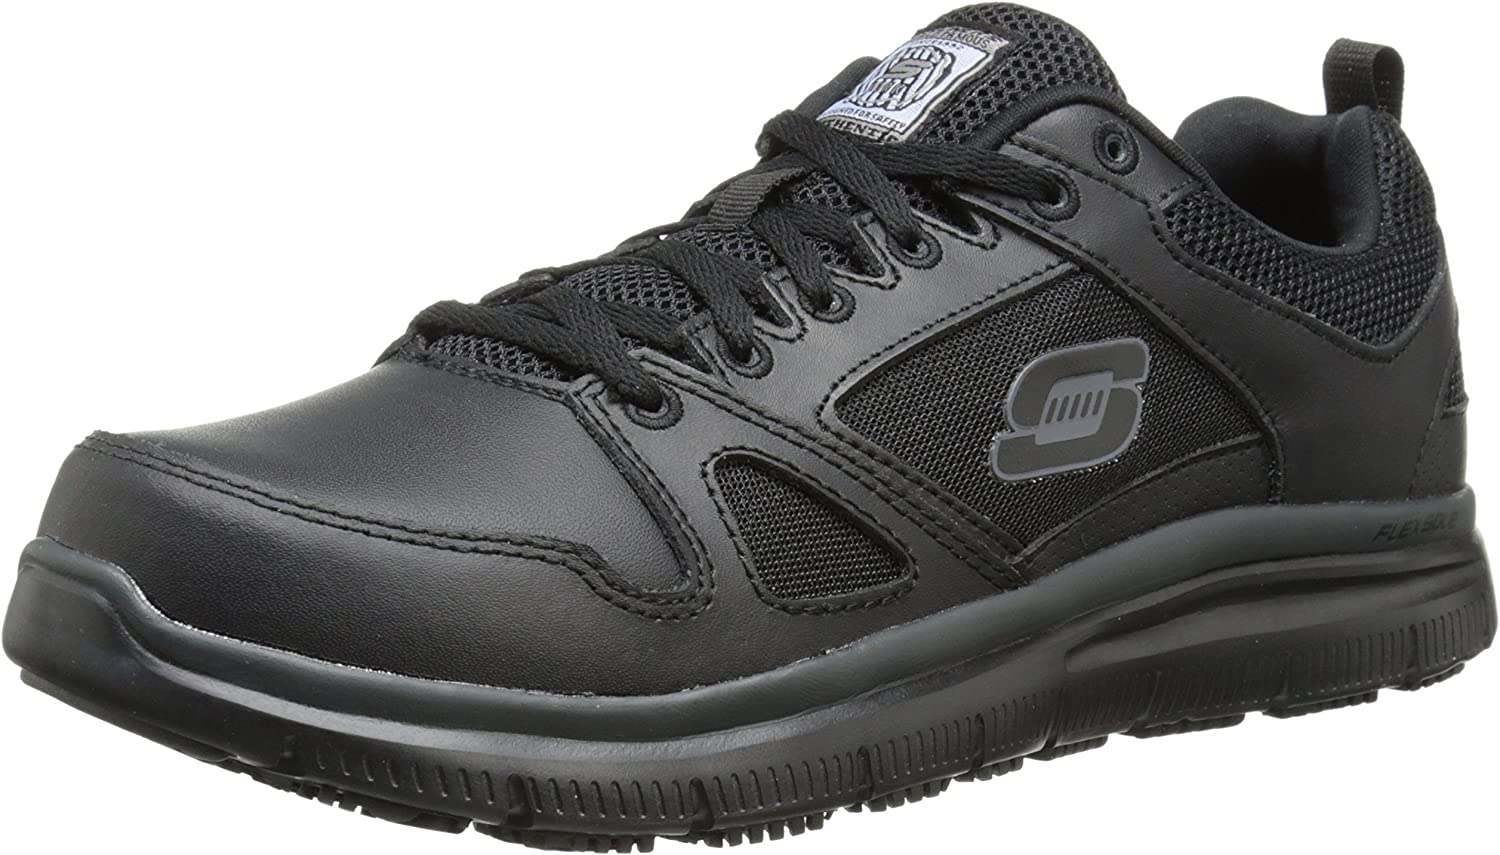 Skechers Men's Flex Advantage Sr Work Shoe